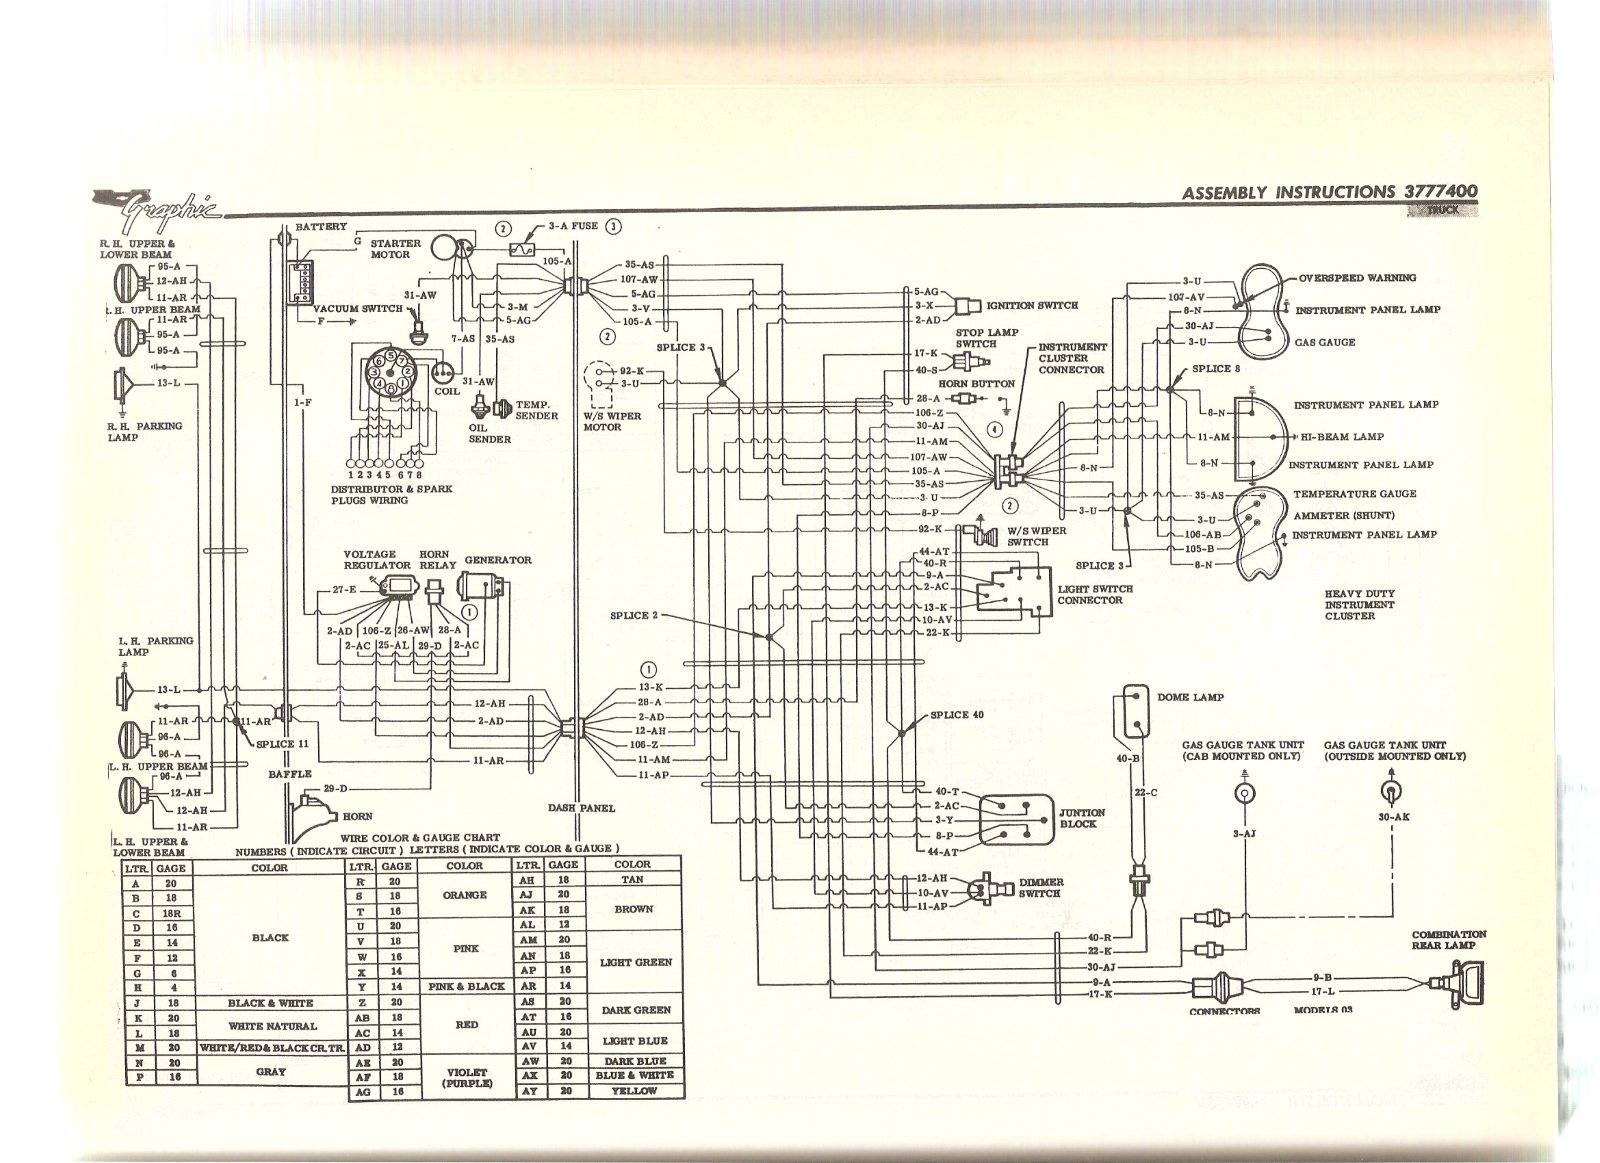 67 72 chevy wiring diagram images 67 pontiac gto wiring wiring diagram the 1947 present chevrolet amp gmc truck message